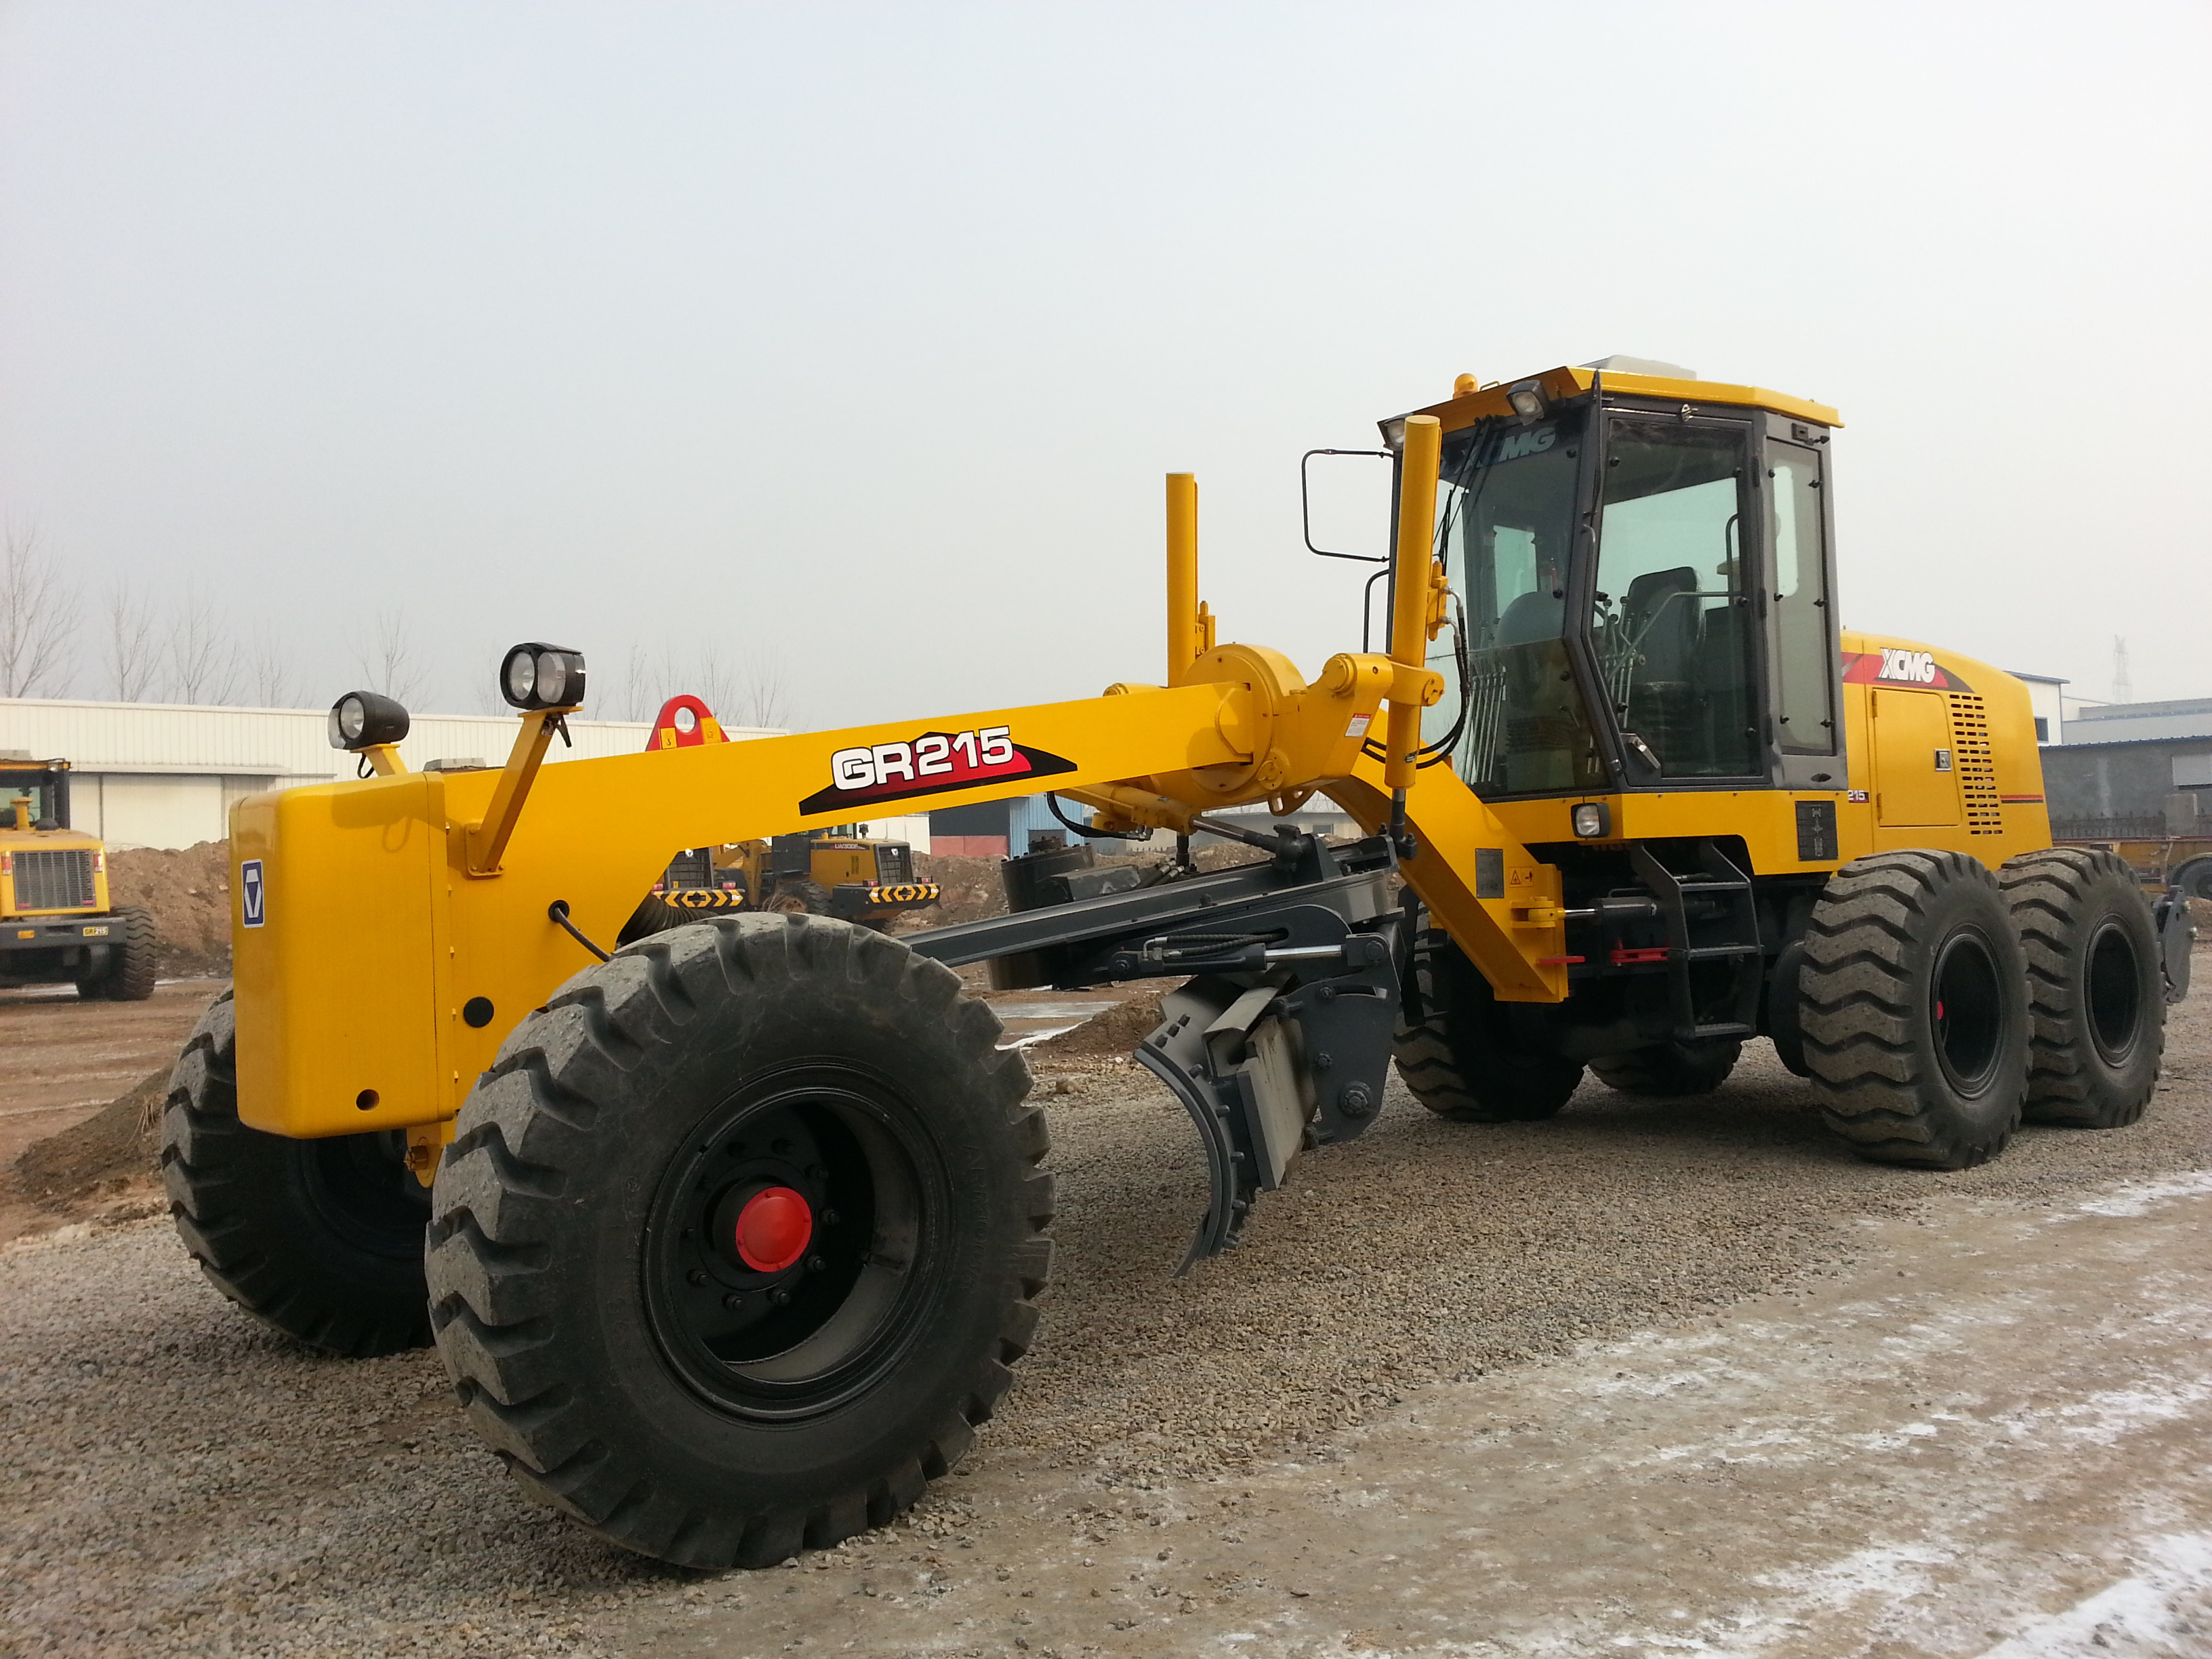 XCMG GR215 Road Construction Grader Machinery With Cummins 6CTA8.3-C215 Engine